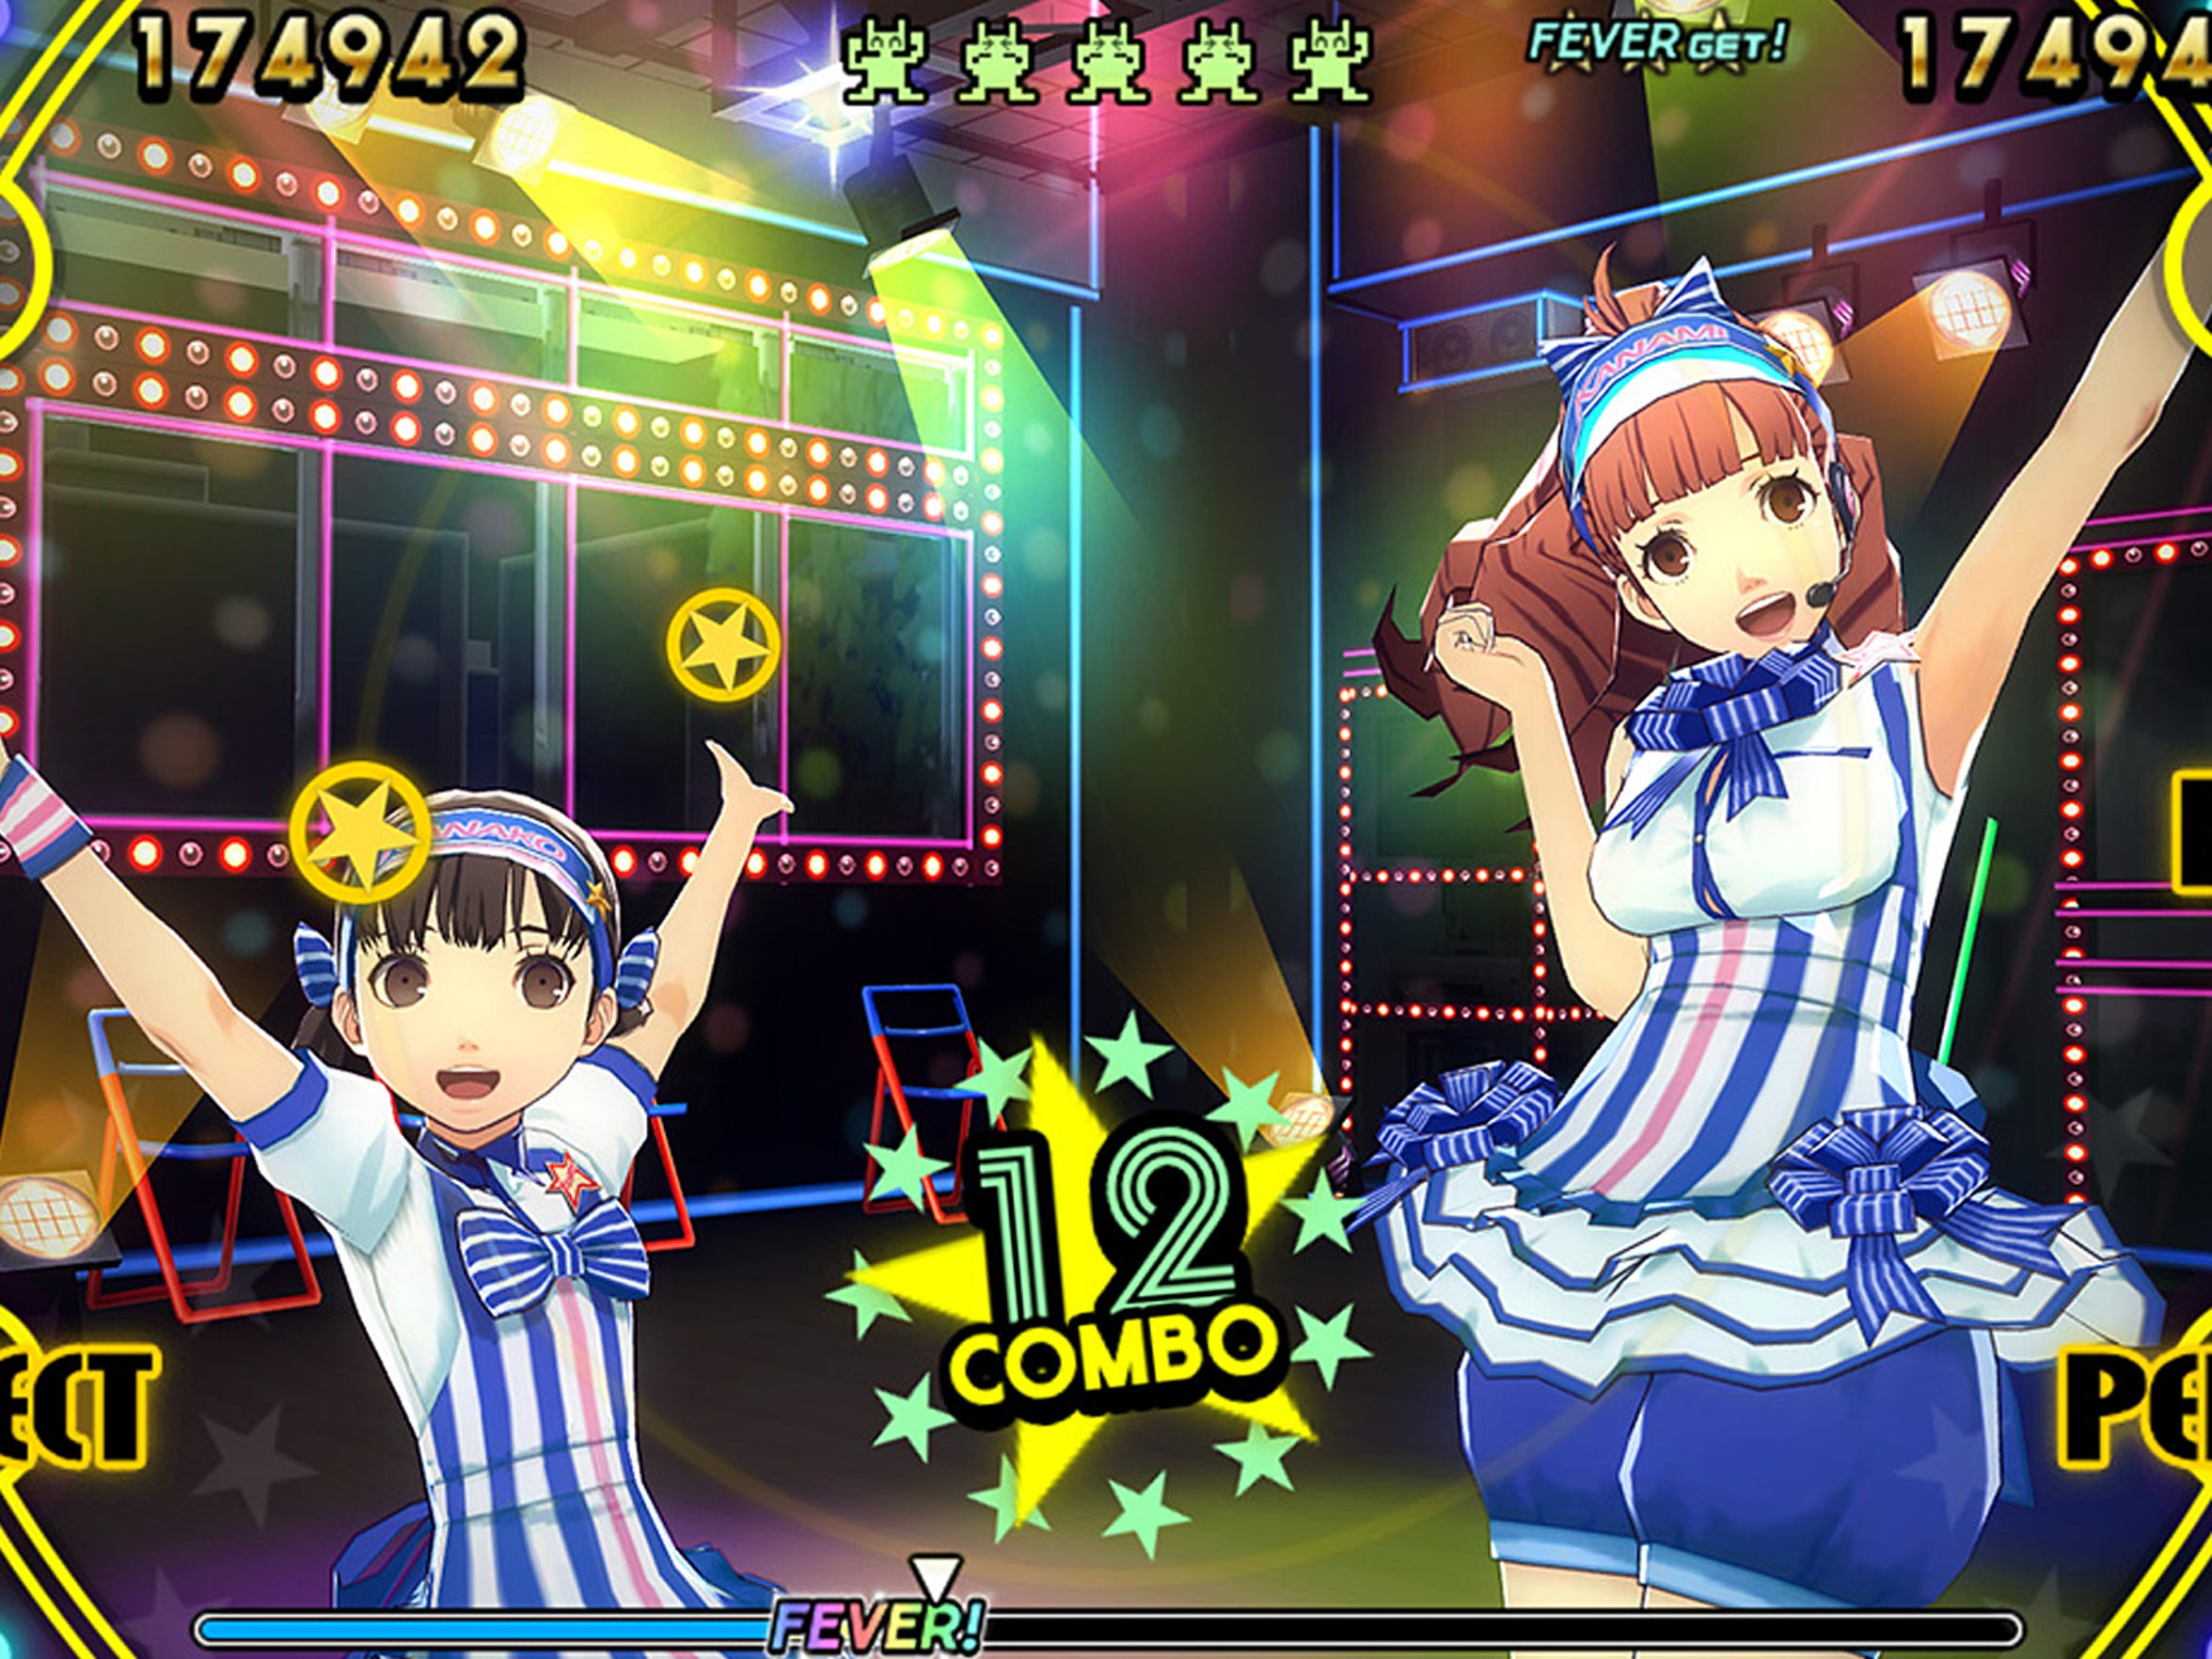 """Persona 4: Dancing All Night"" features a user interface"